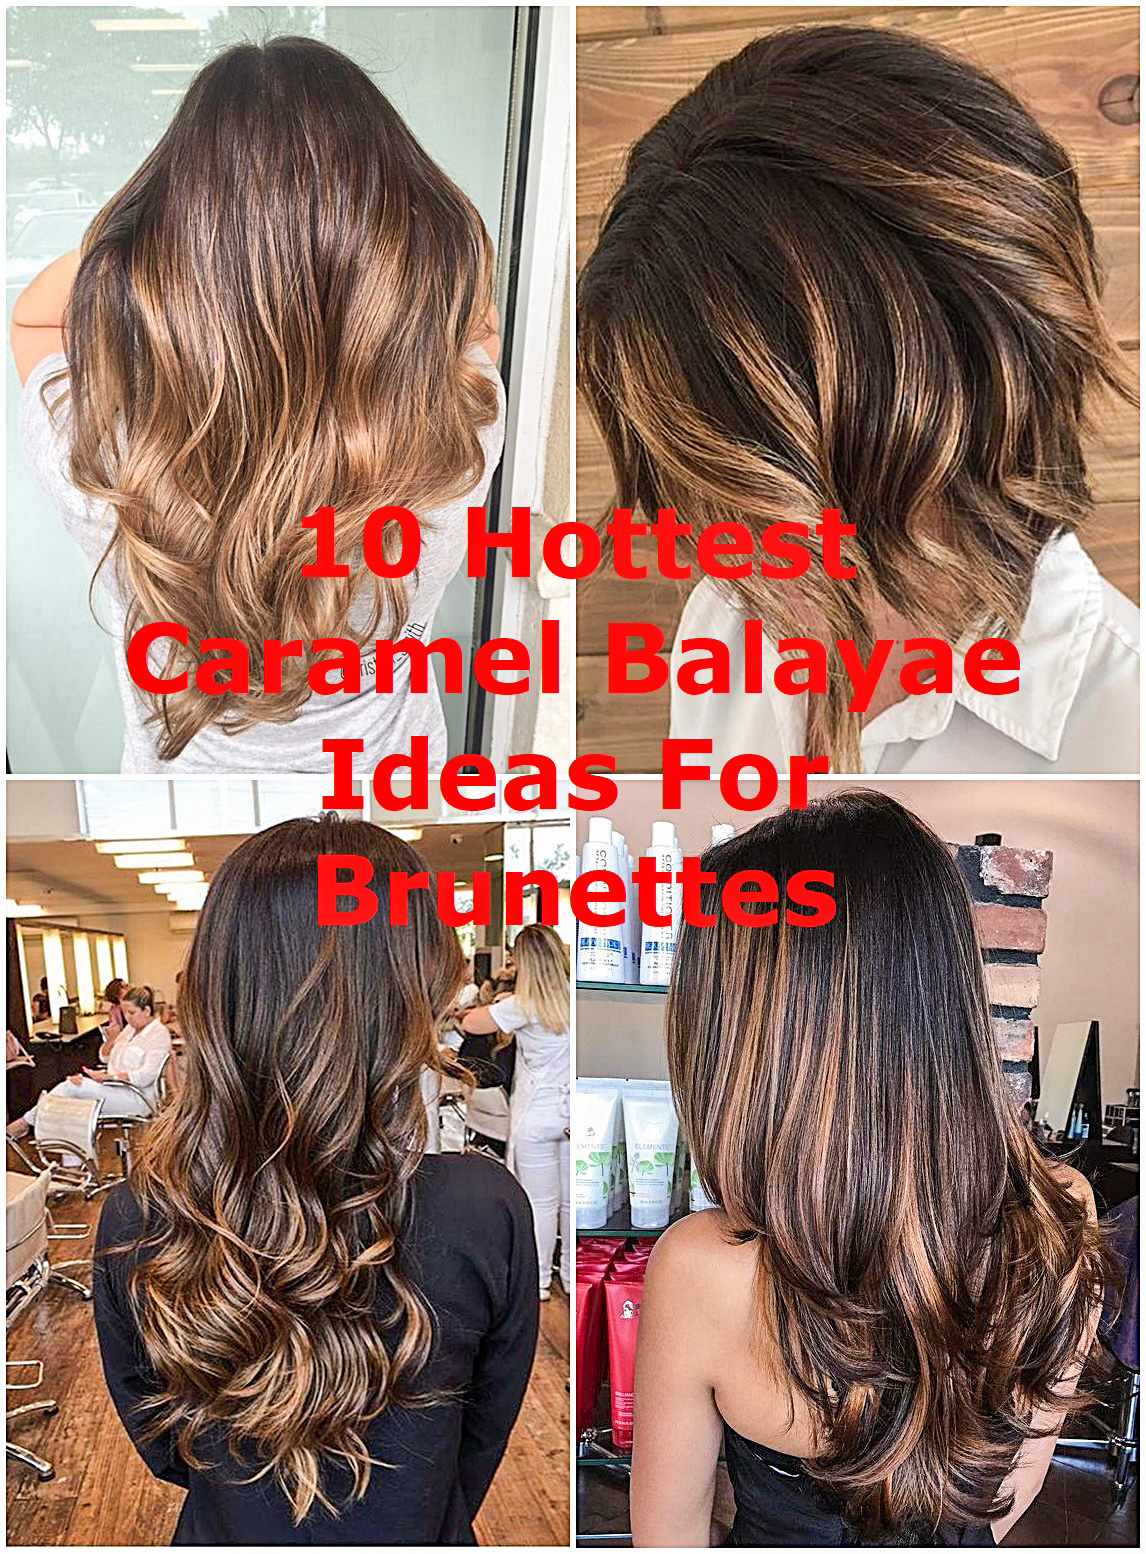 10 Hottest Caramel Balayage Ideas For Brunettes